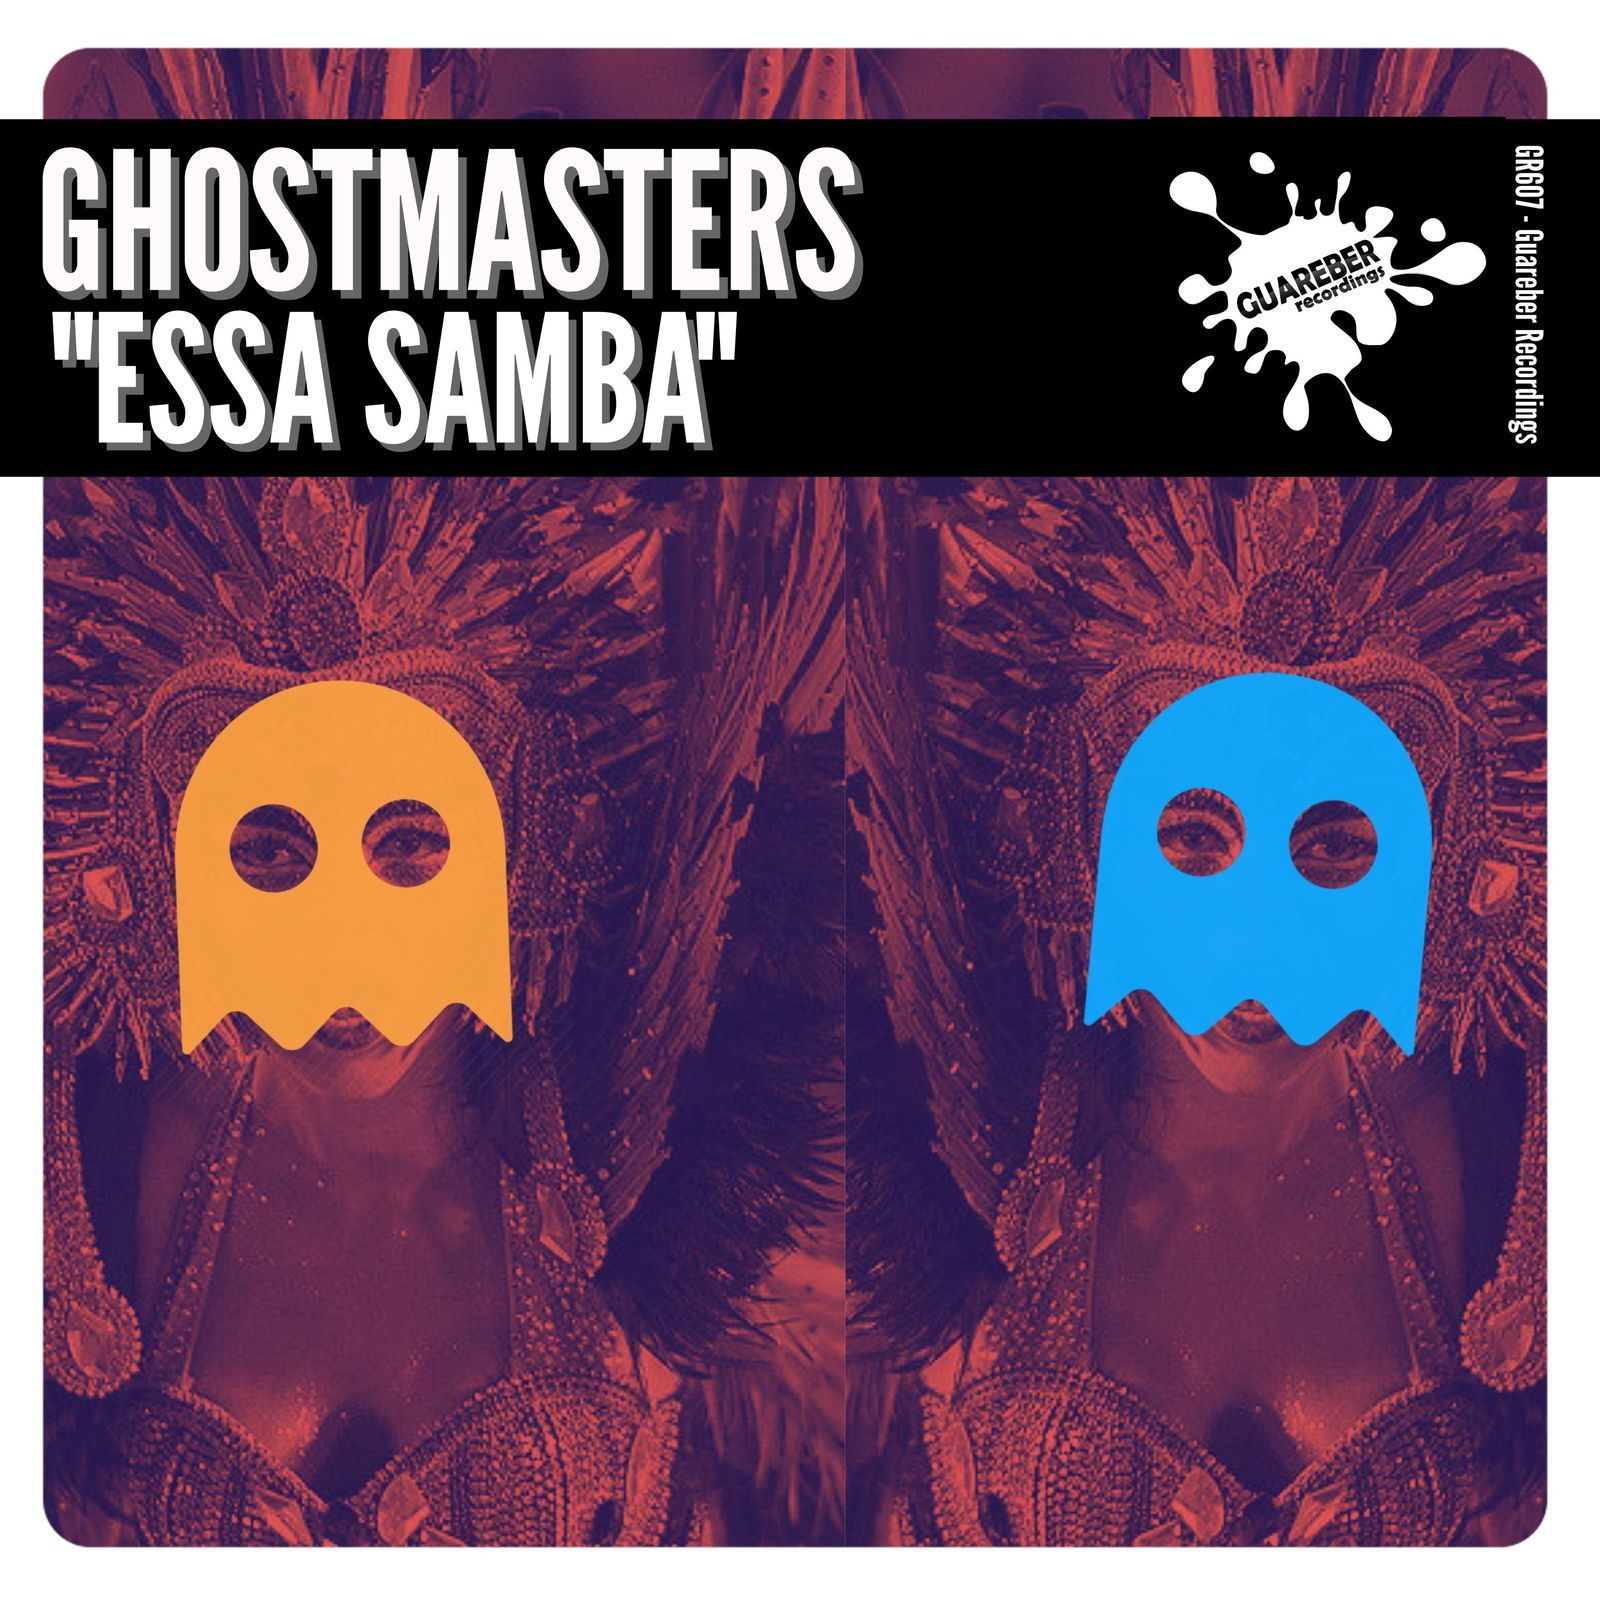 GR607 GhostMasters - Essa Samba (Extended Mix)